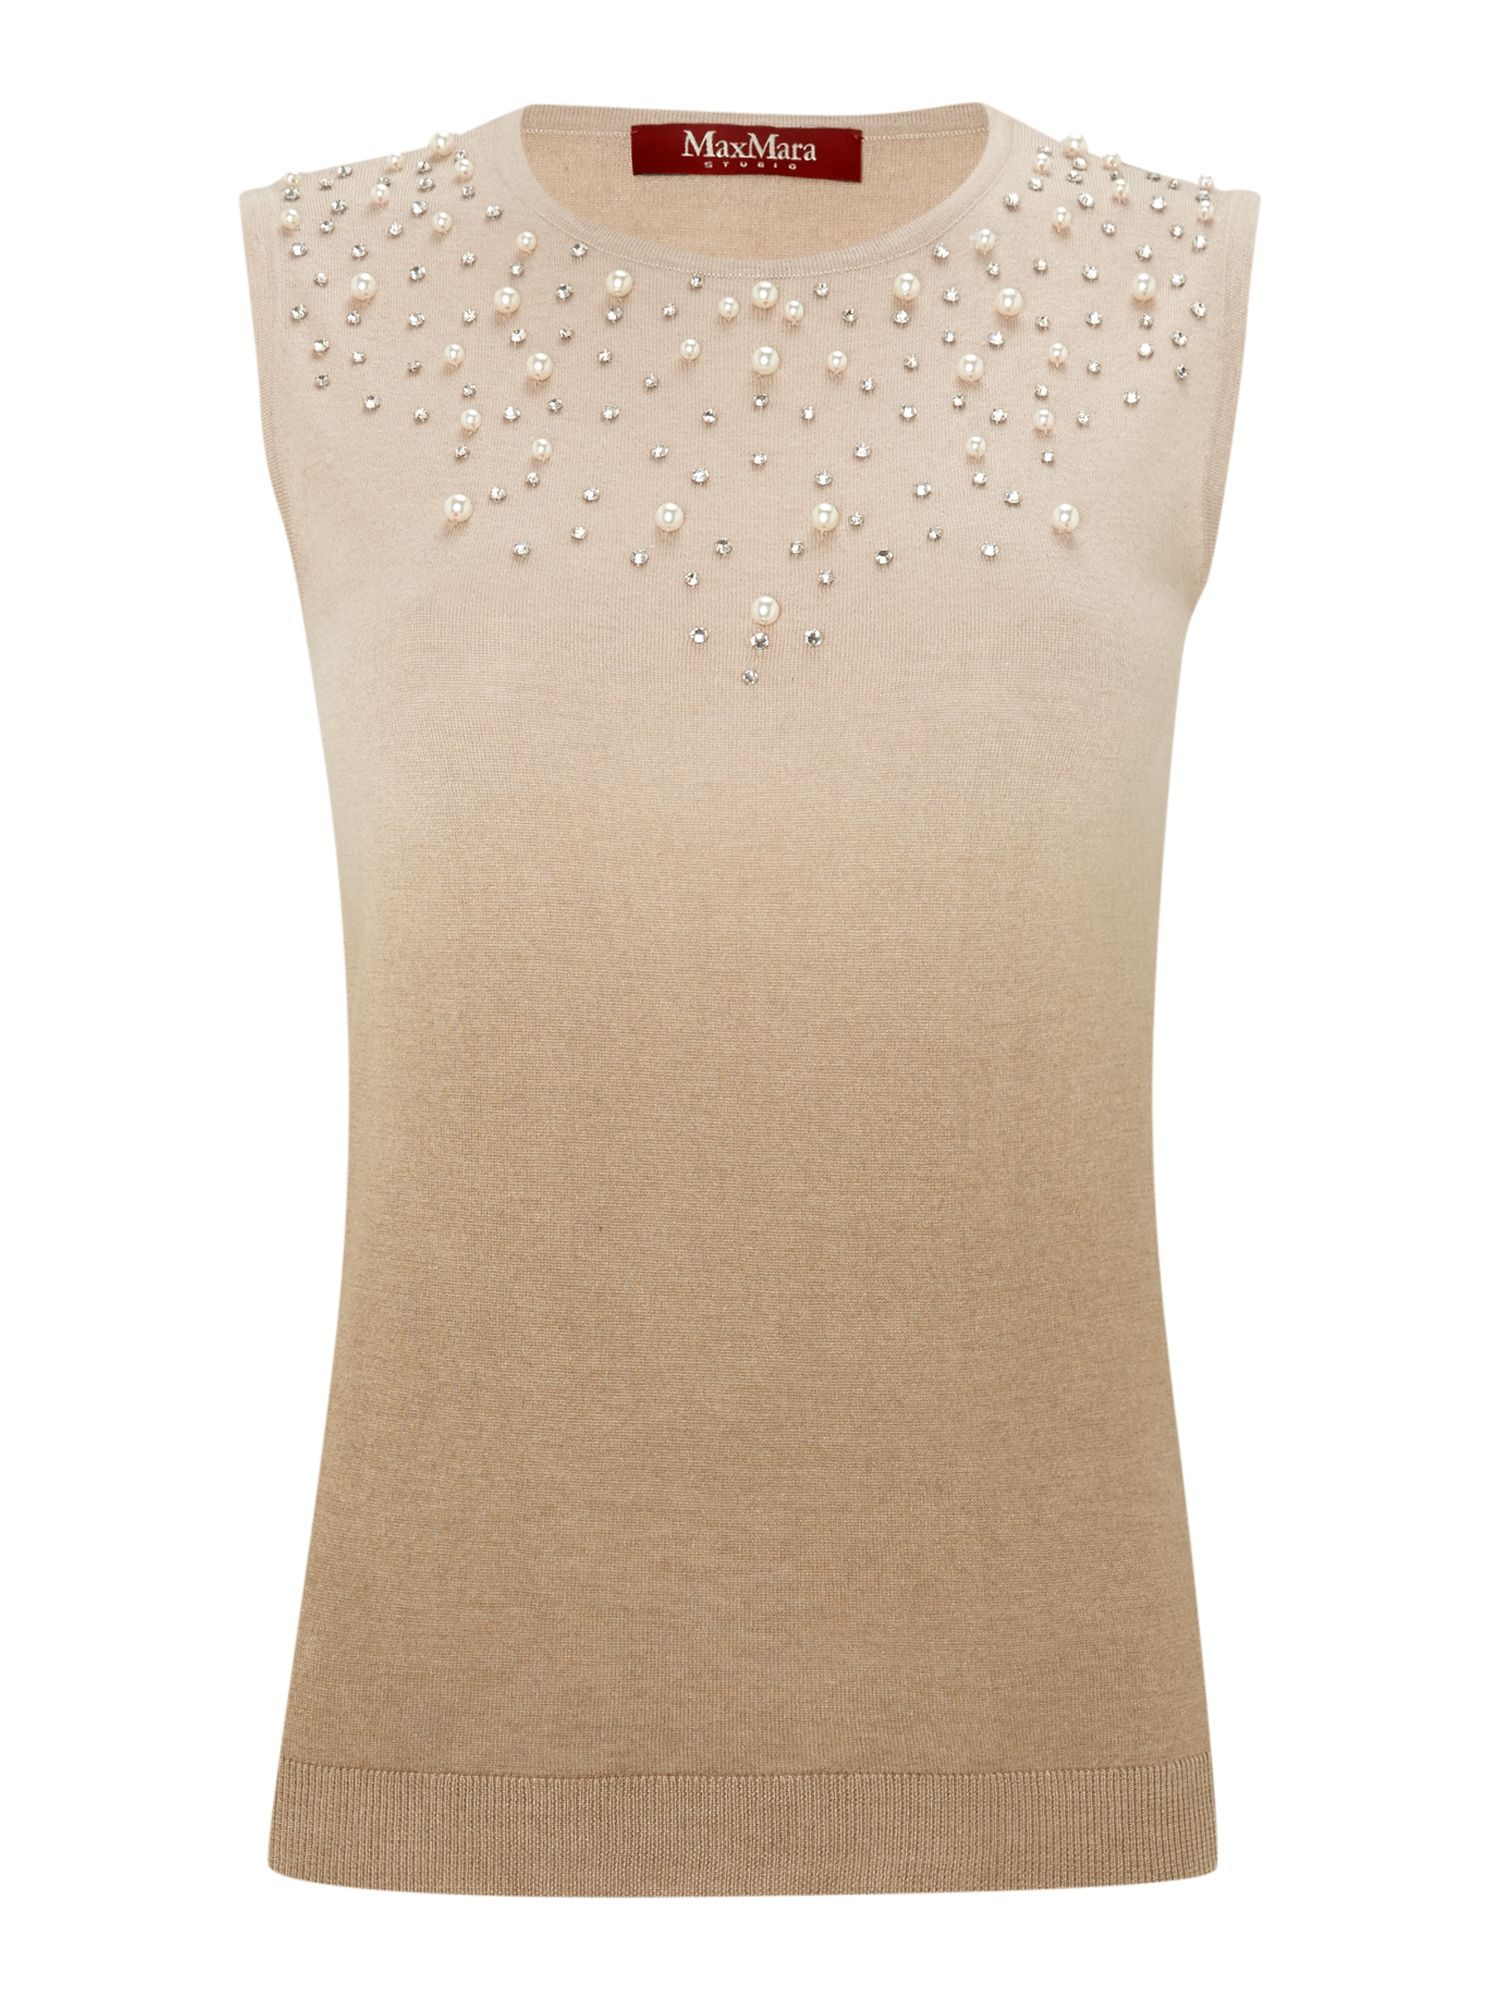 Romolo knitted sleeveless top with embellishment